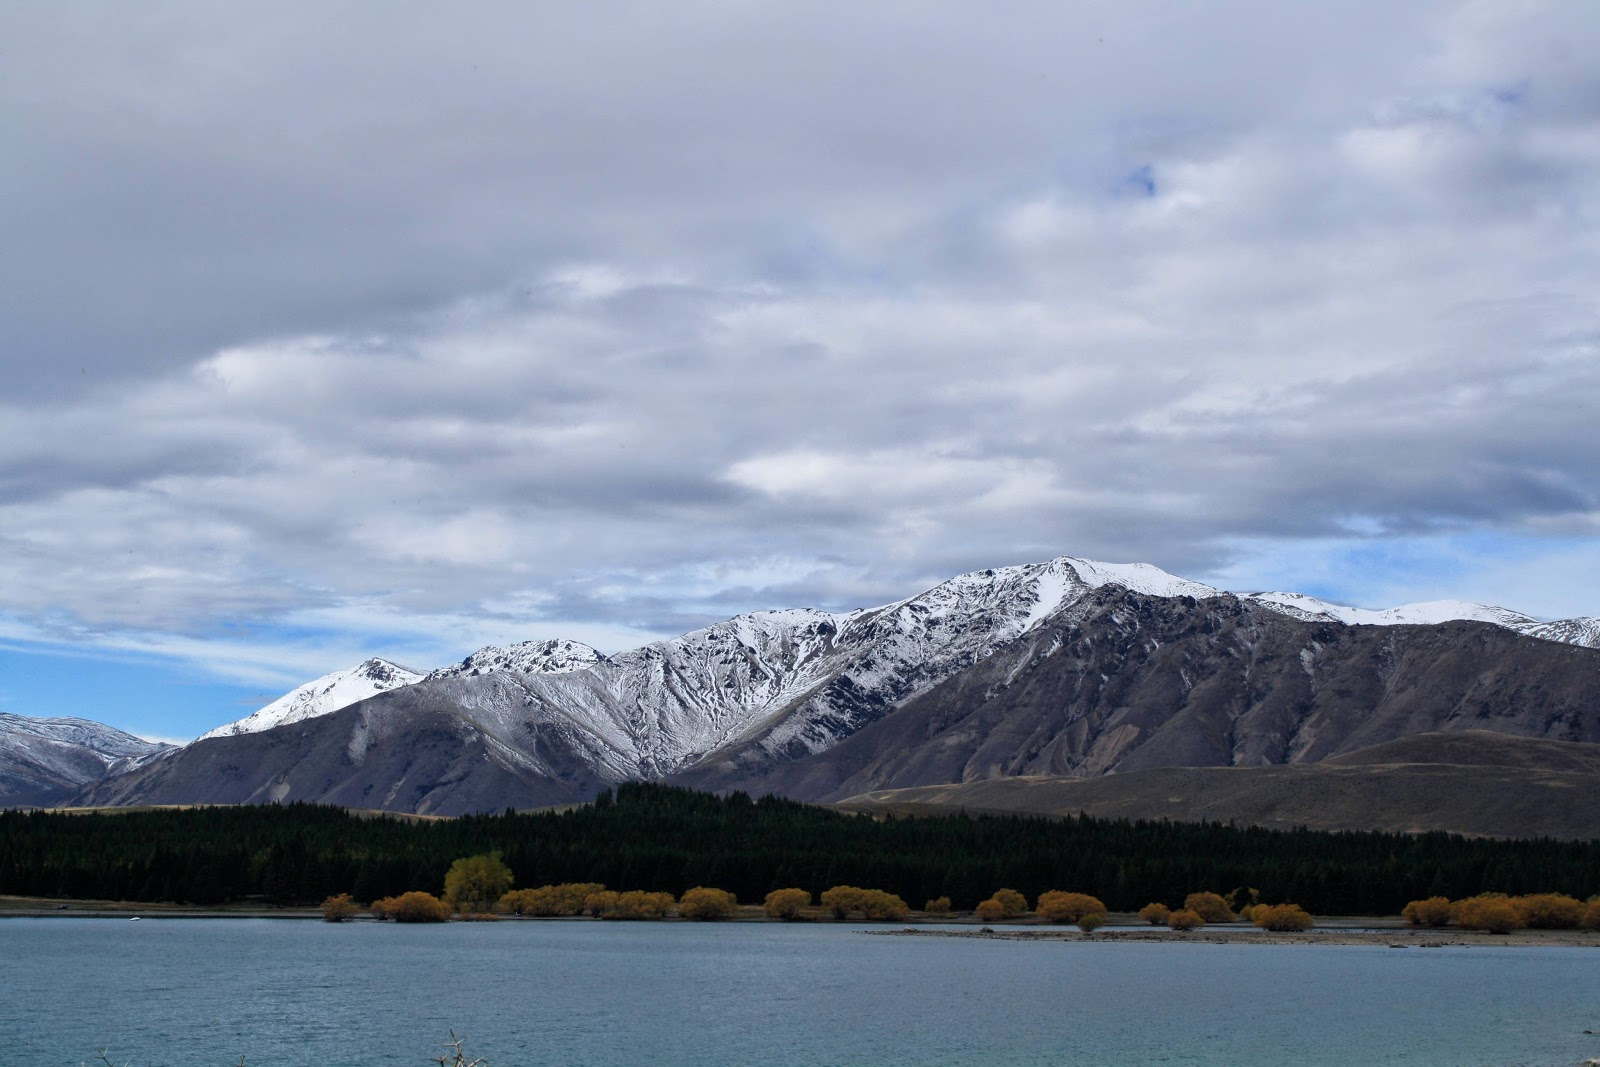 Lake Tekapo, with some mountains.